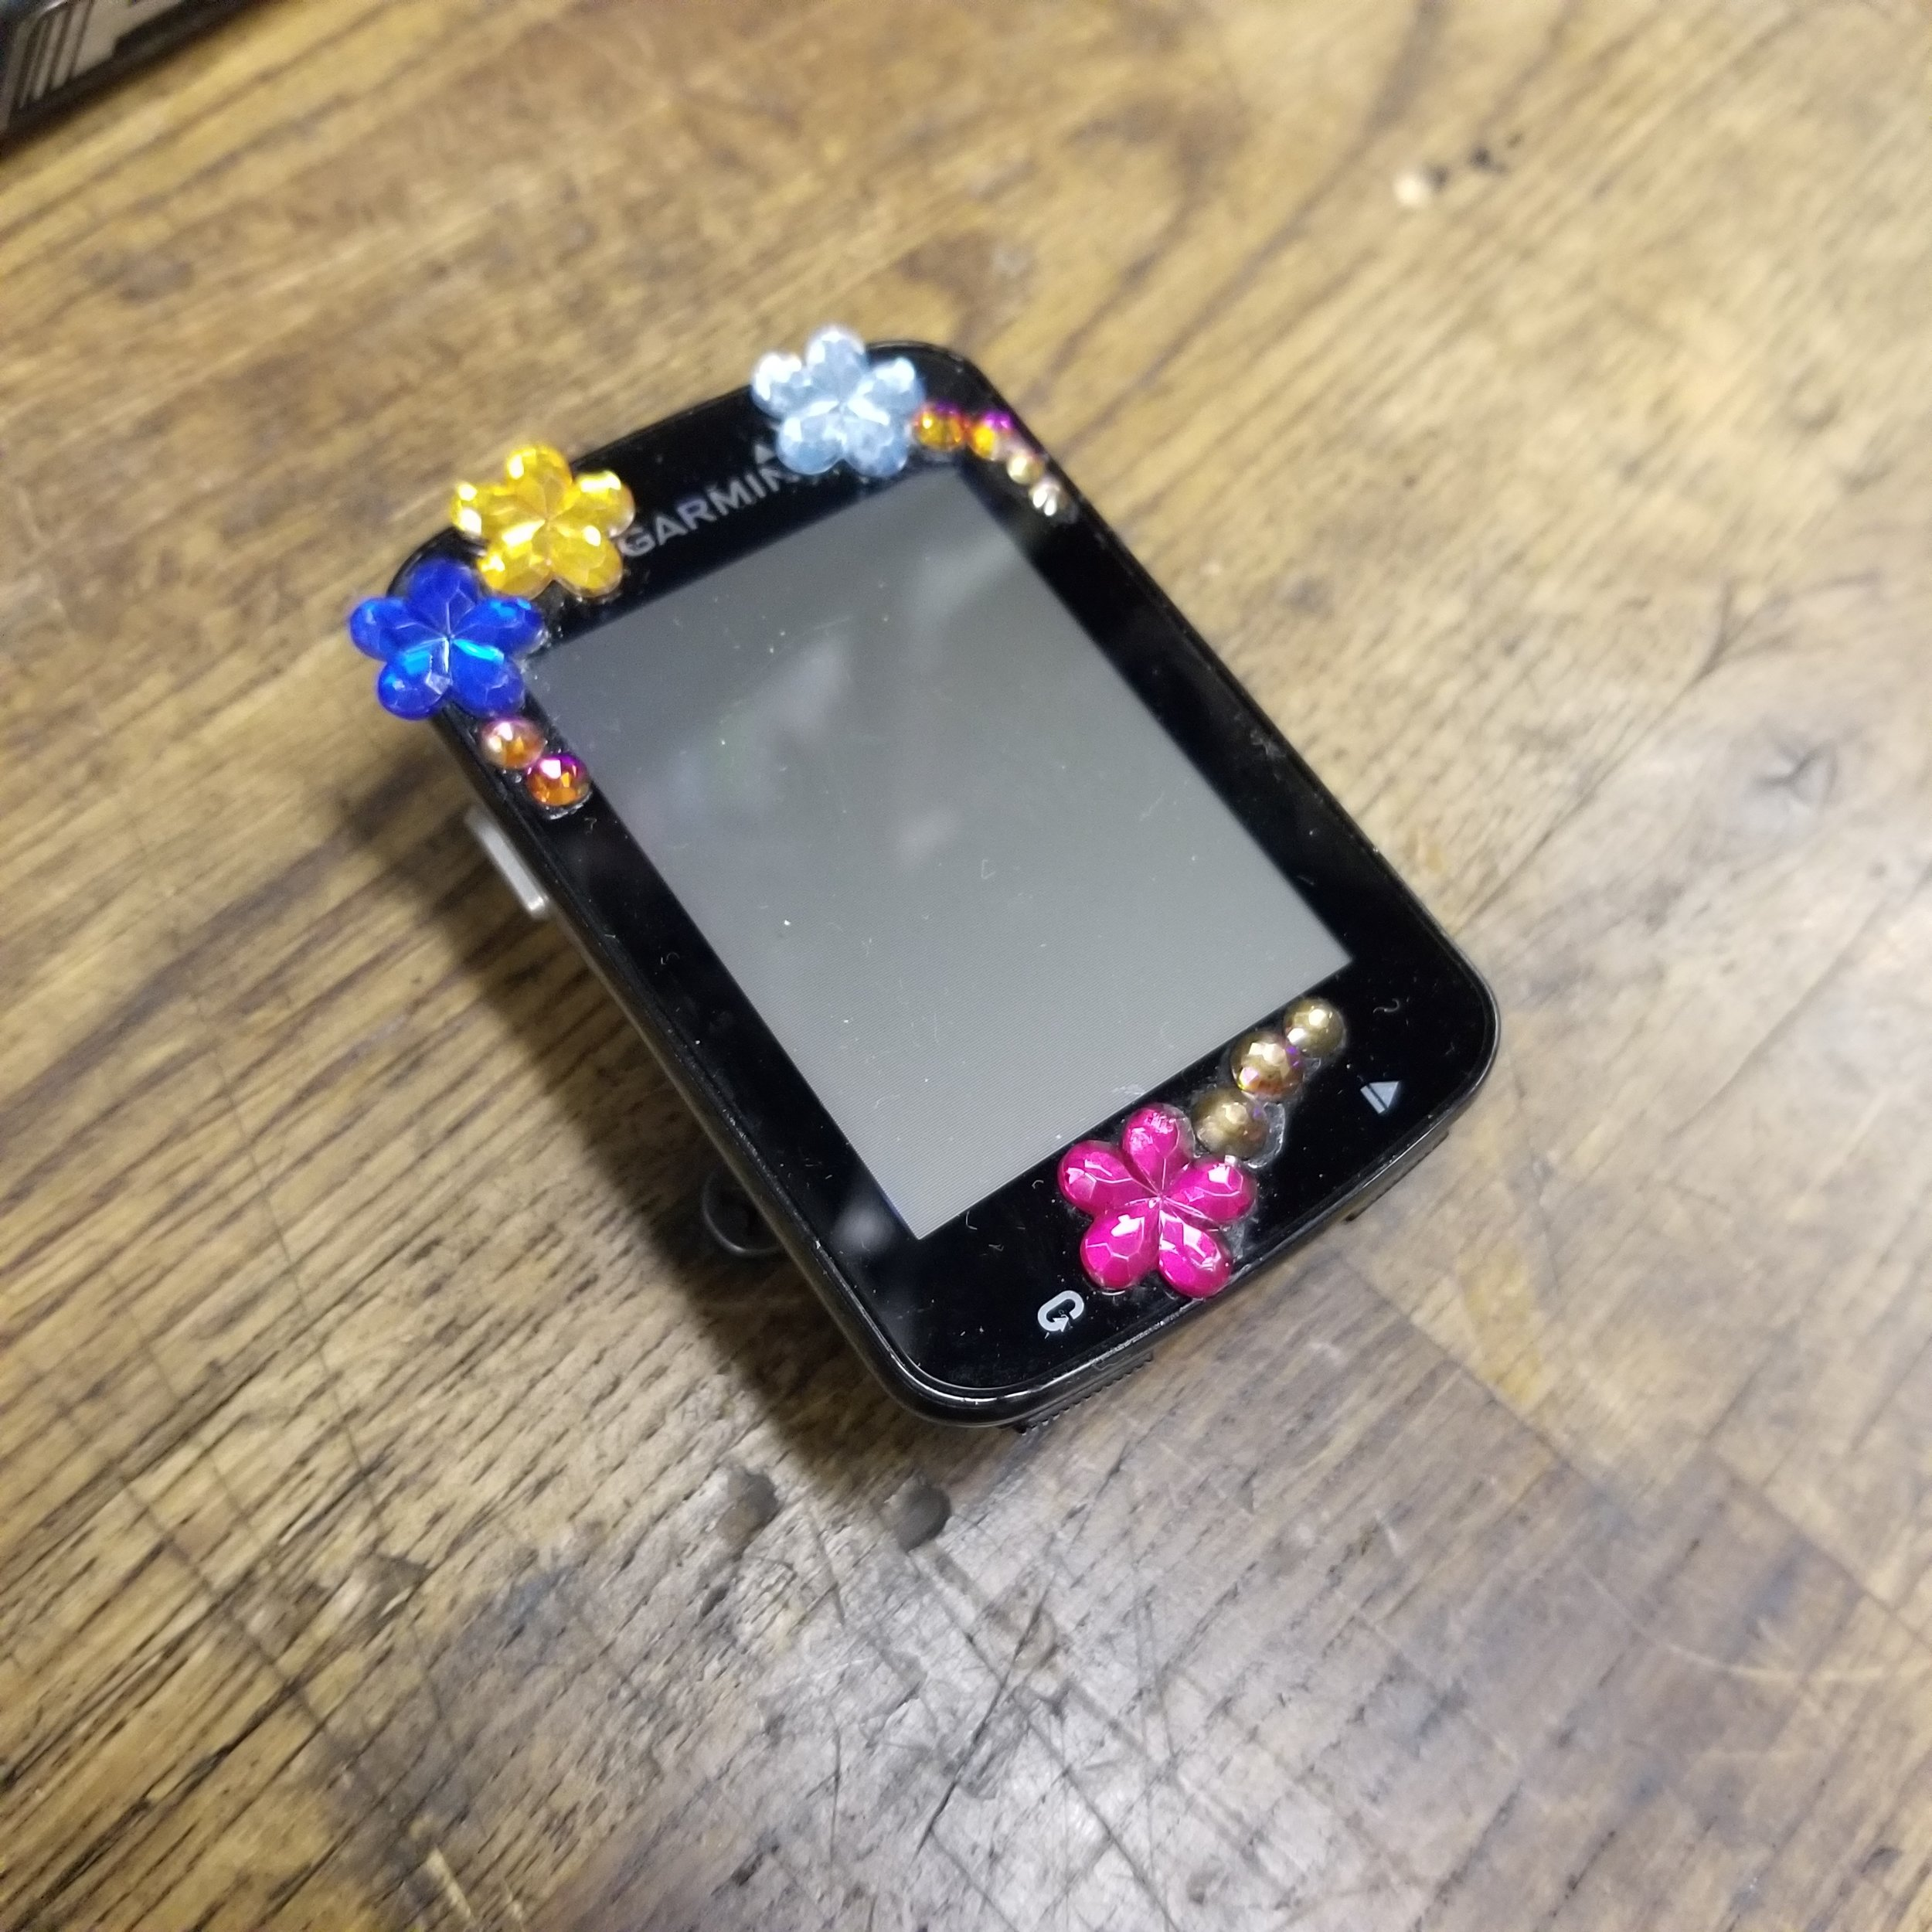 Nina's tricked out Garmin 820